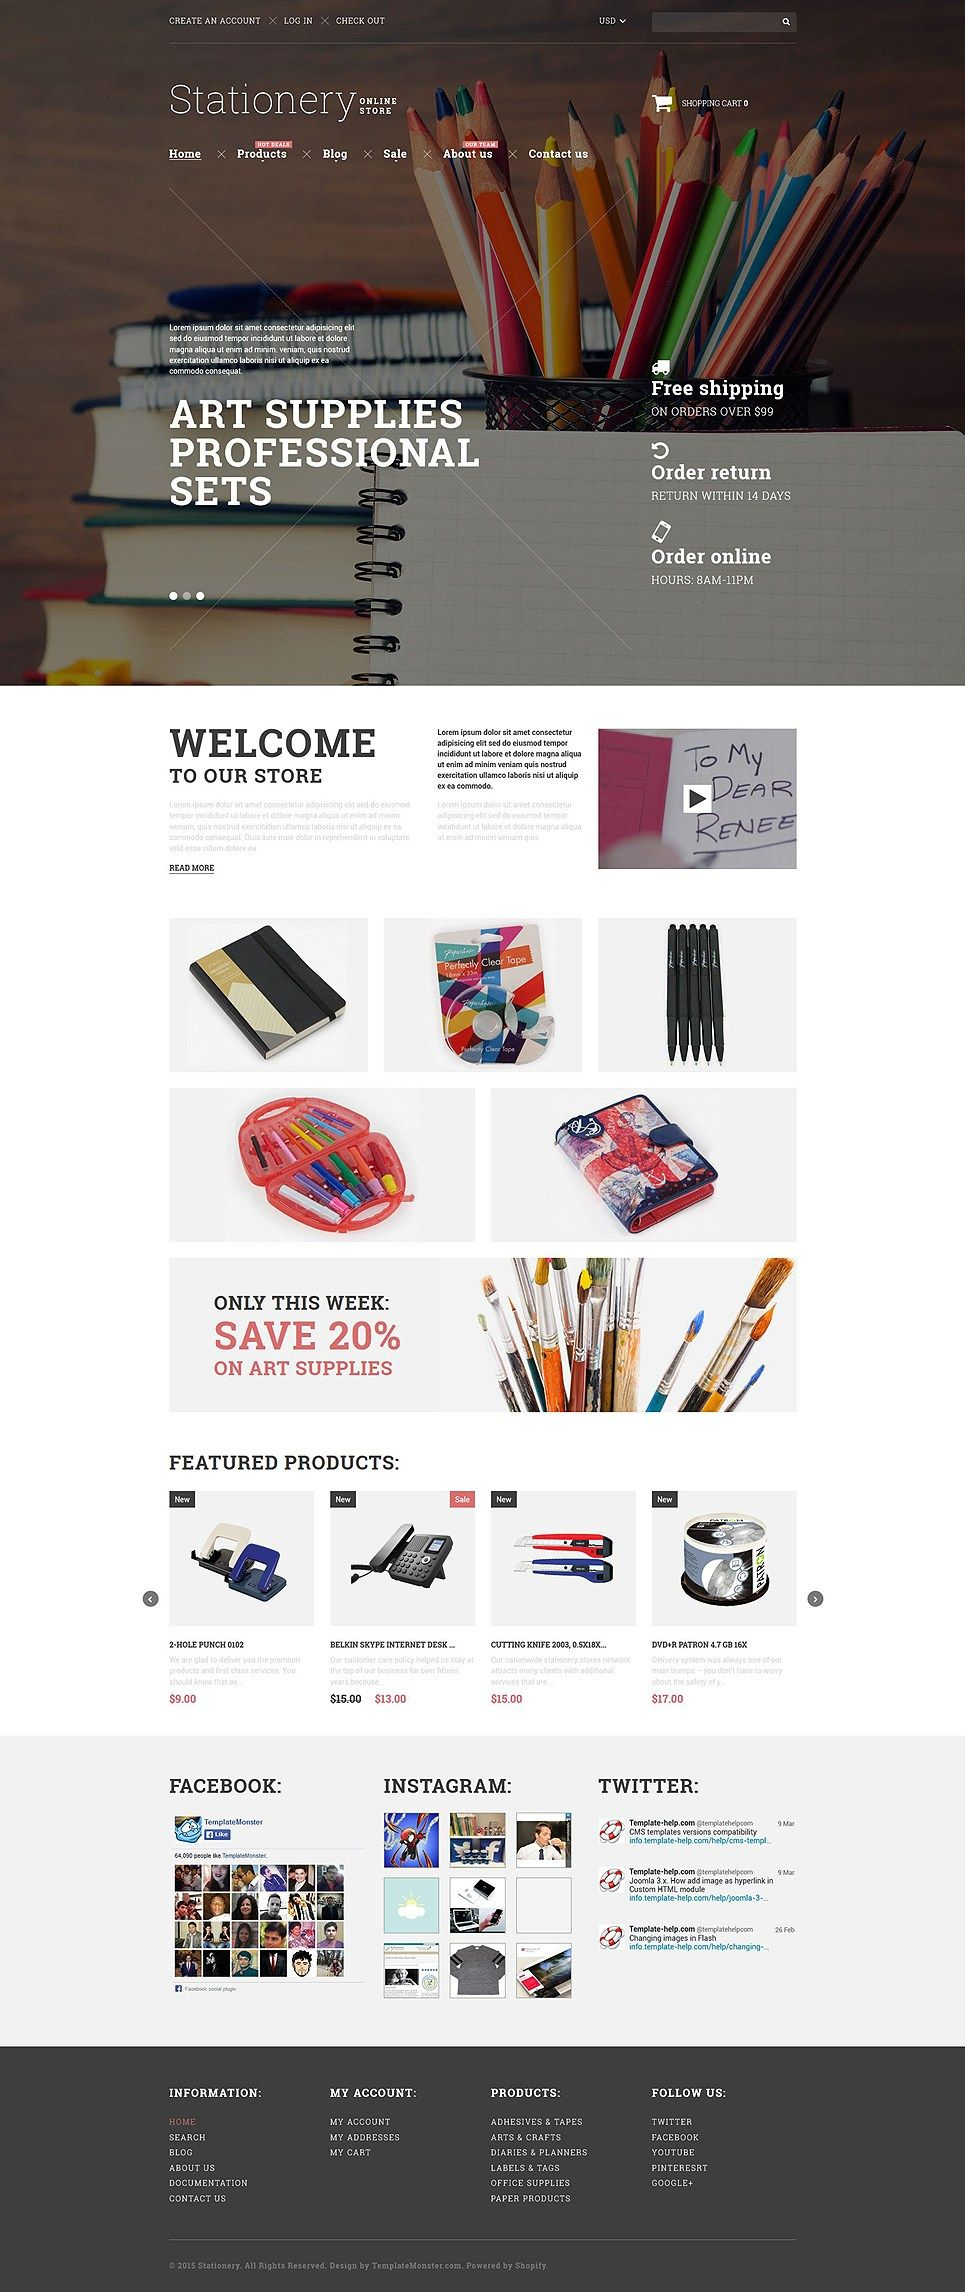 Get Creative With These Awesome Art Supplies Stationery Store Shopify Themes Buildify Stationery Websites Shopify Theme Stationery Store